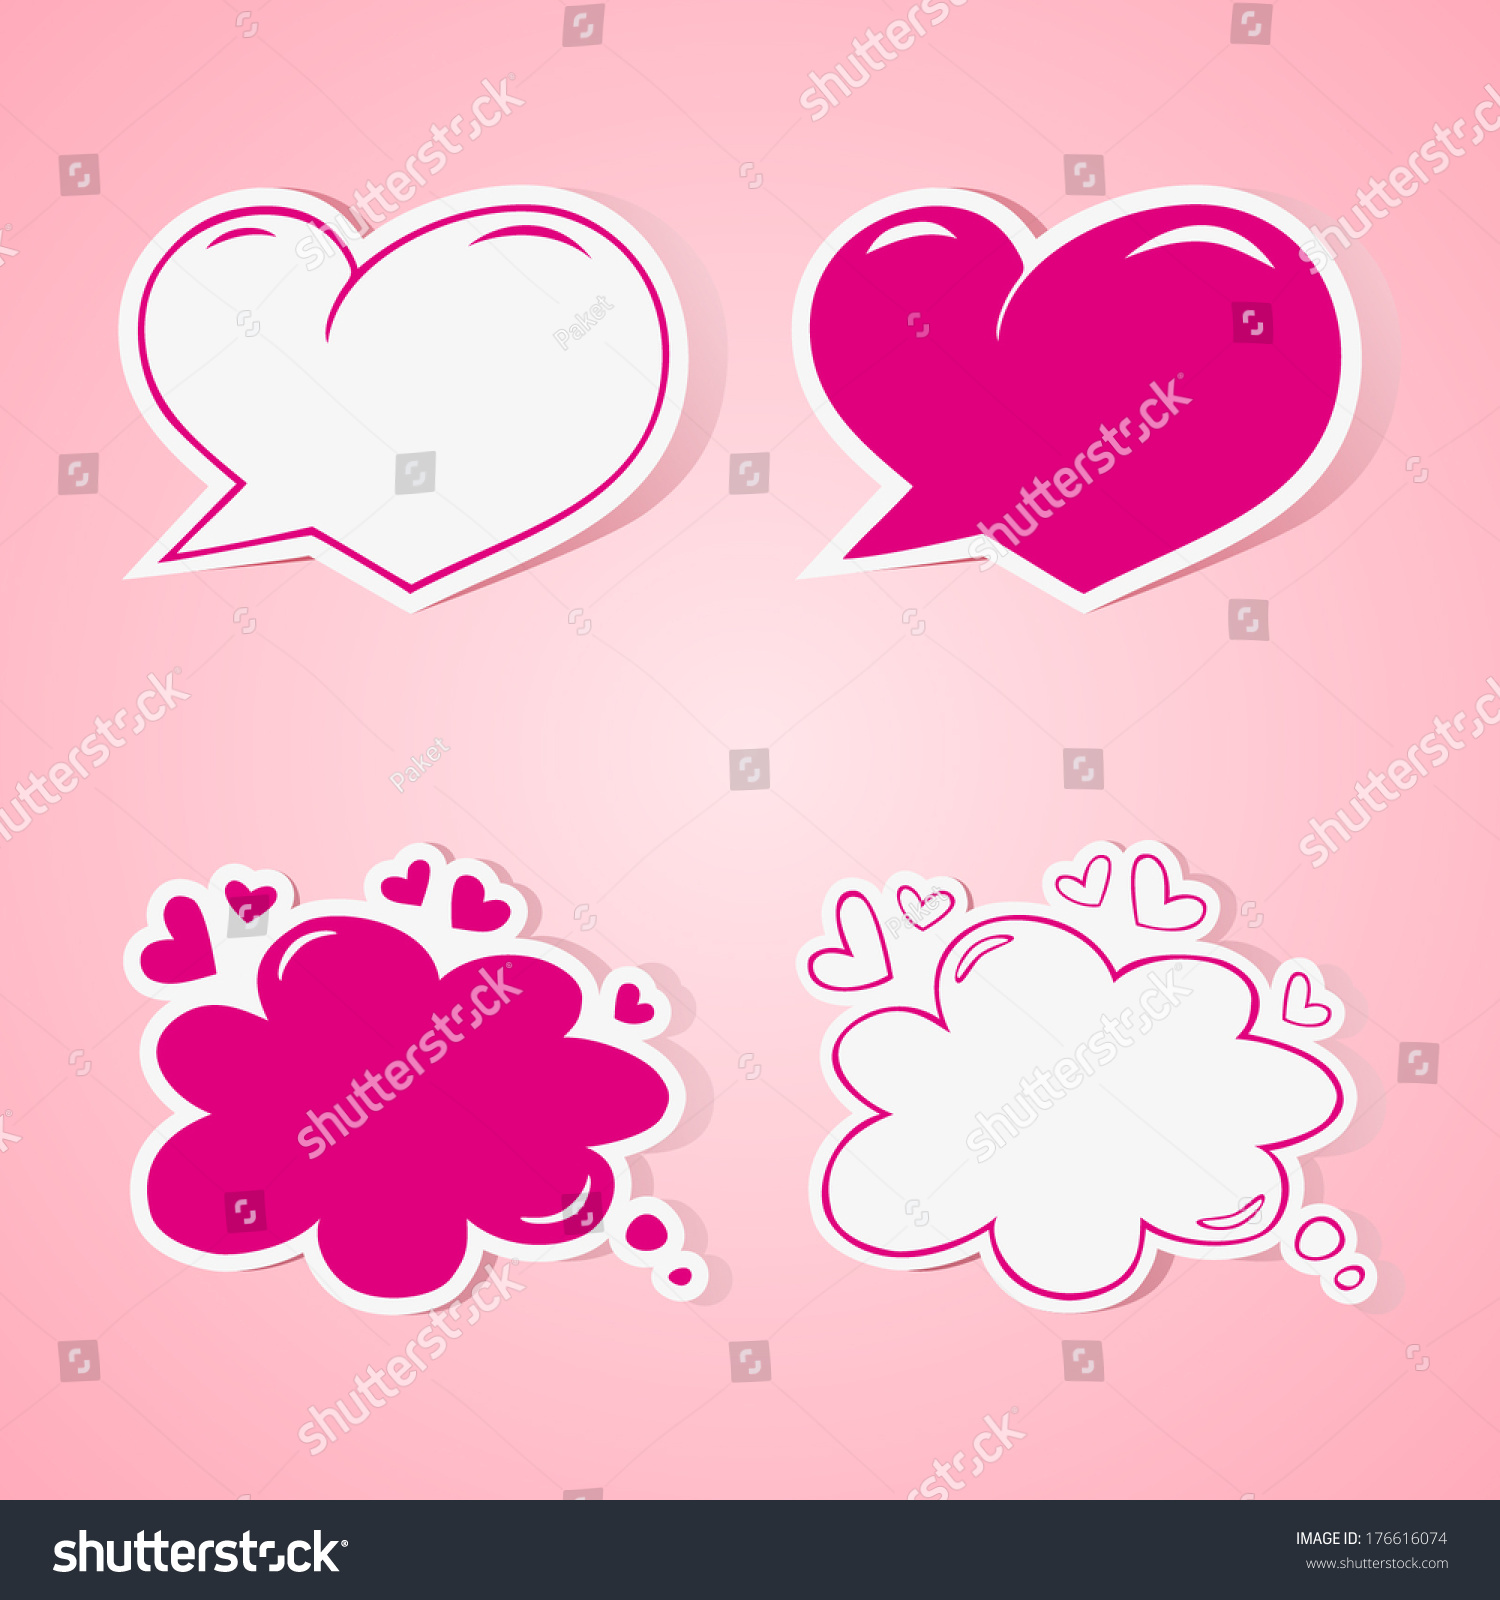 Heart Shaped Speech Bubbles Set   Elements For Wedding Or Baby Shower  Invitation, Scrapbooking Etc